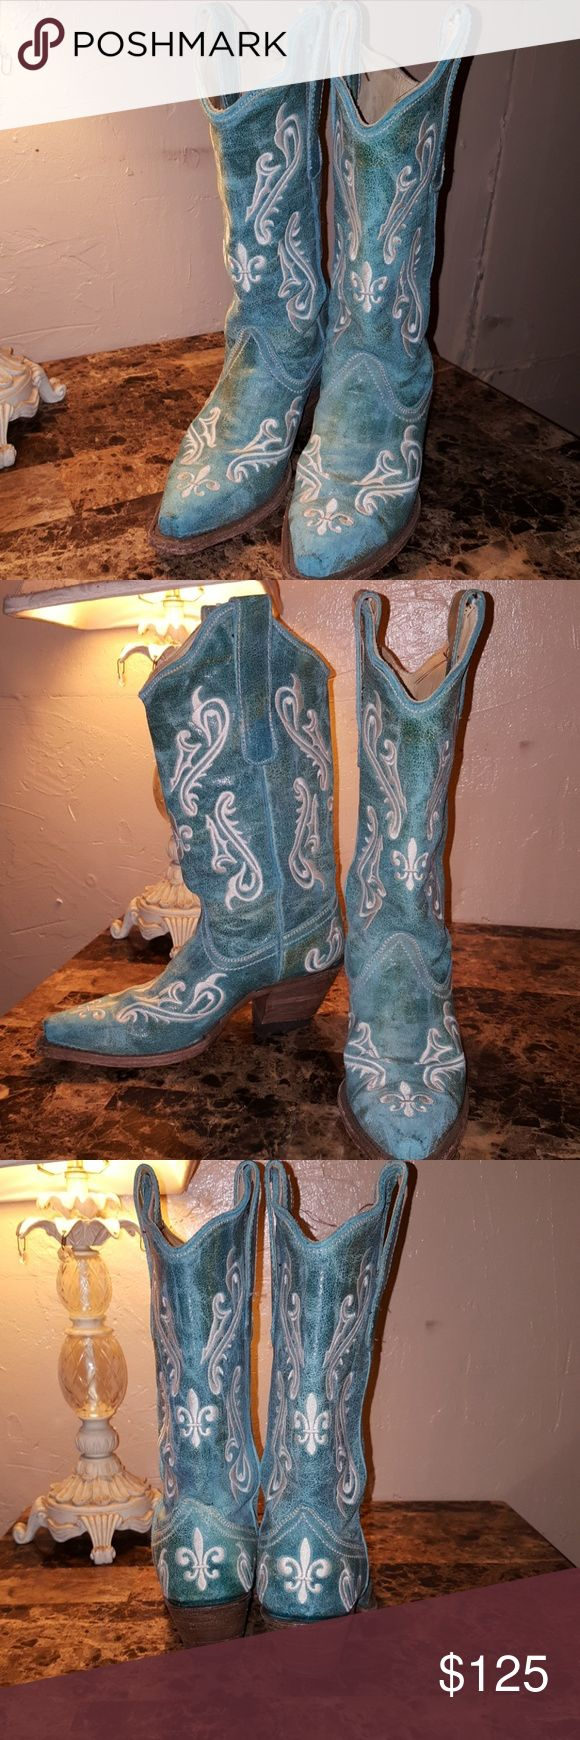 Corral Boots Like new teal/turquoise with white embroidery EUC. Cowgirl boots. Corral Shoes